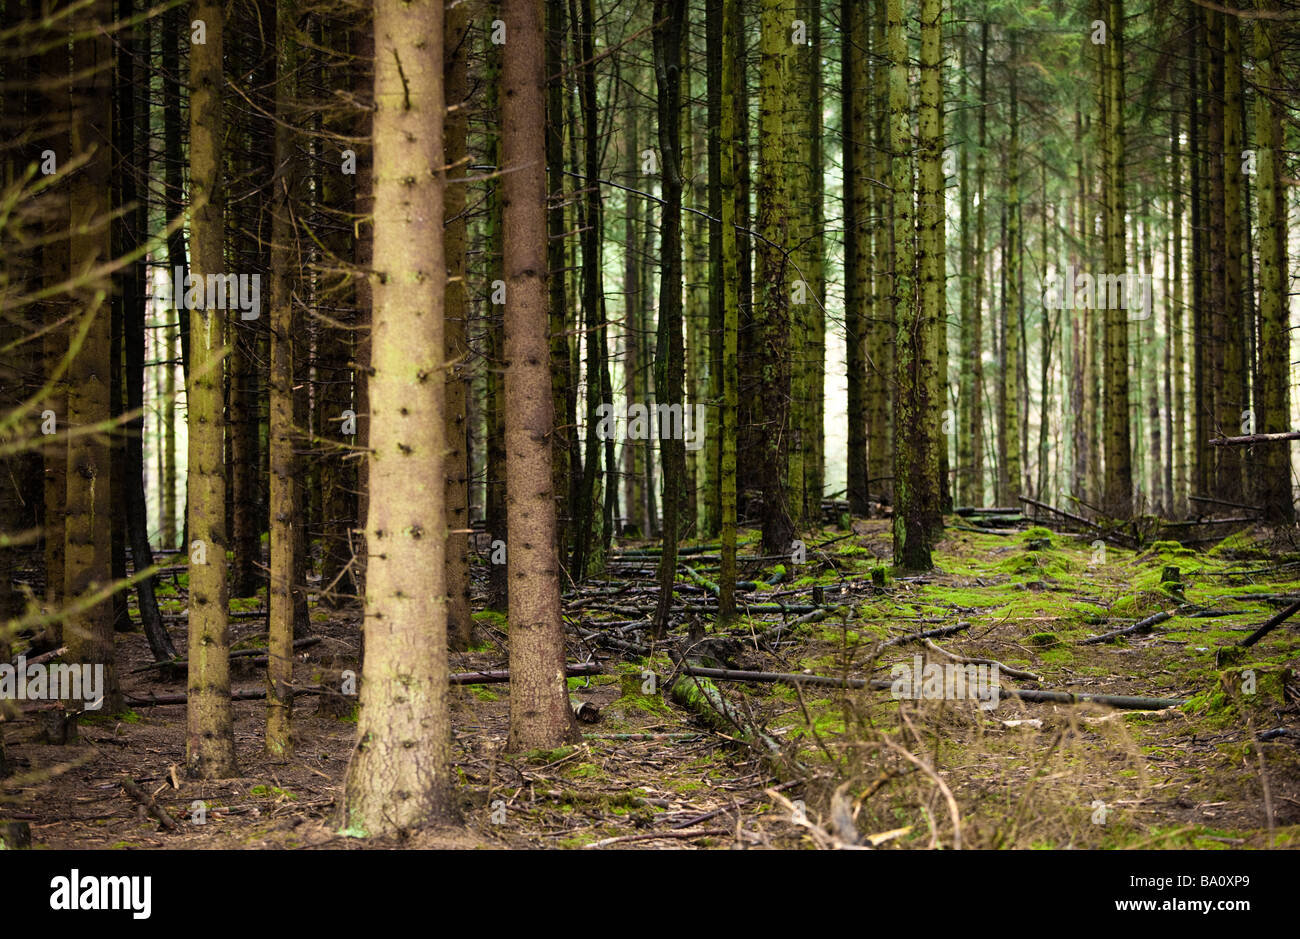 Dense forest of Scots Pine trees UK - Stock Image